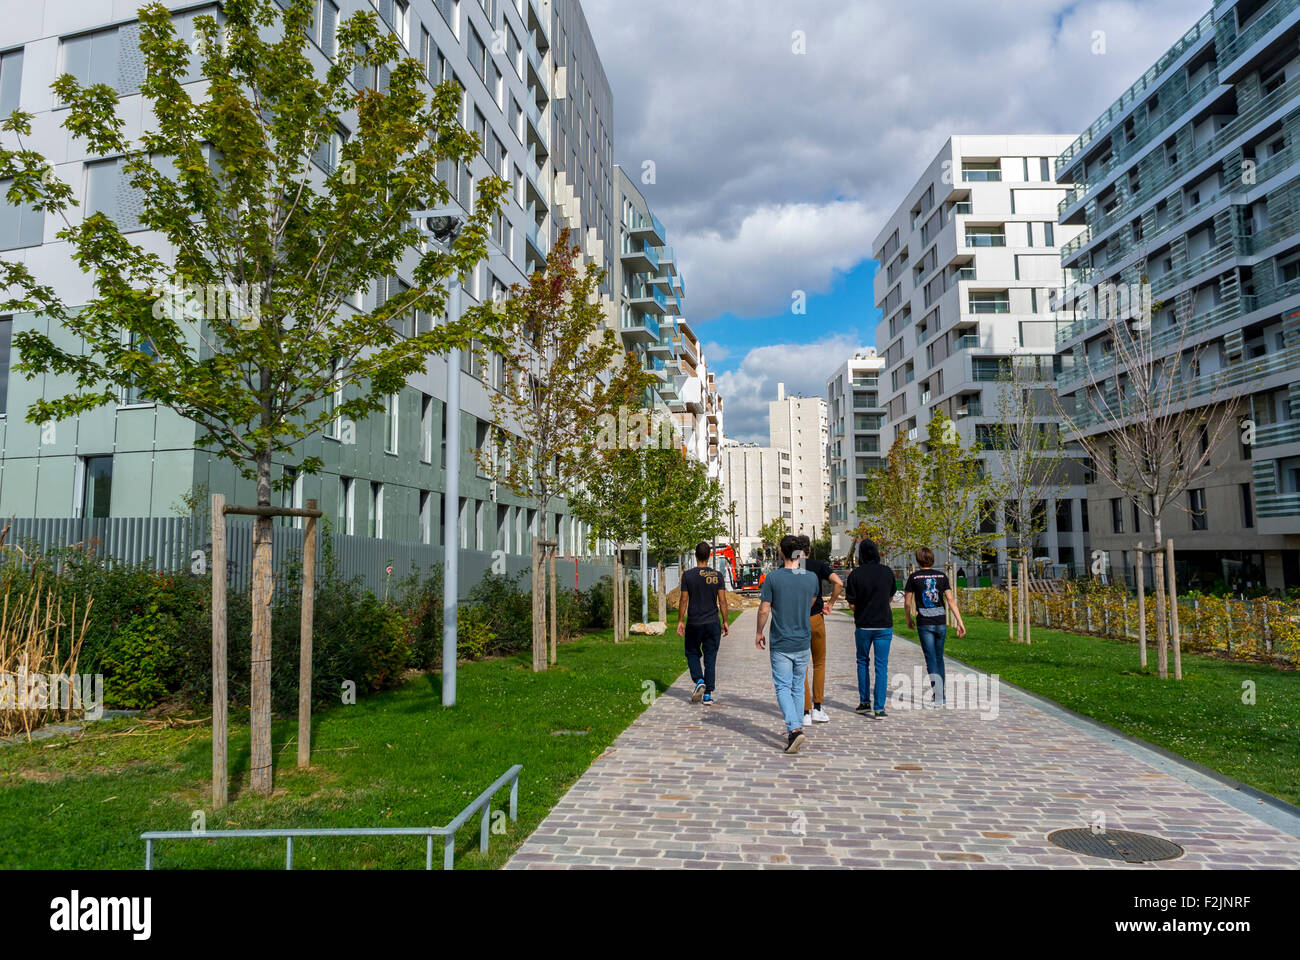 Modern Architecture France paris, france, group french teens walking on street, new modern